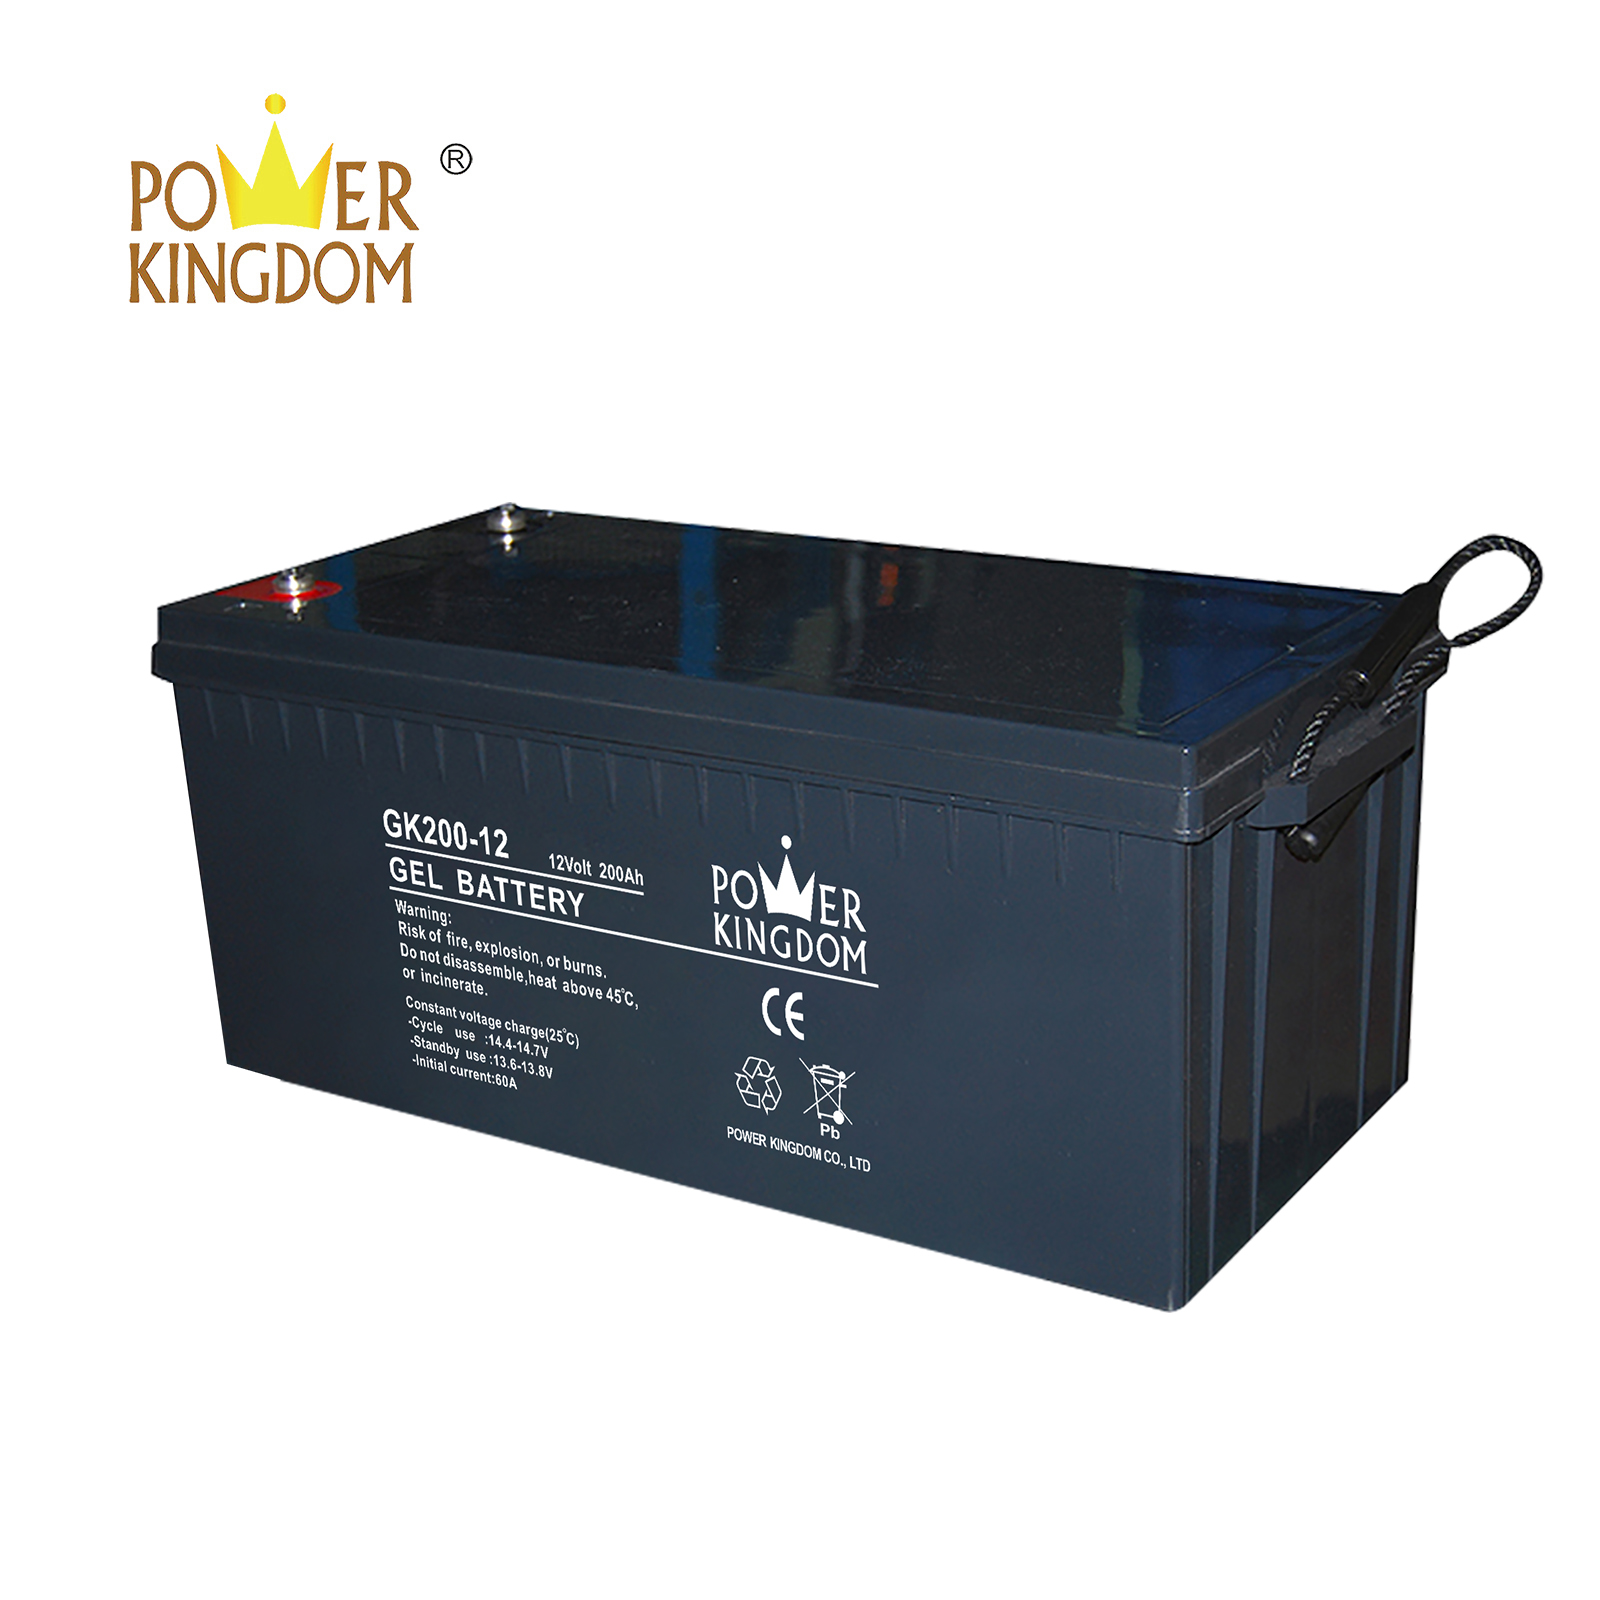 Power Kingdom high consistency rechargeable sealed lead acid battery design wind power system-2